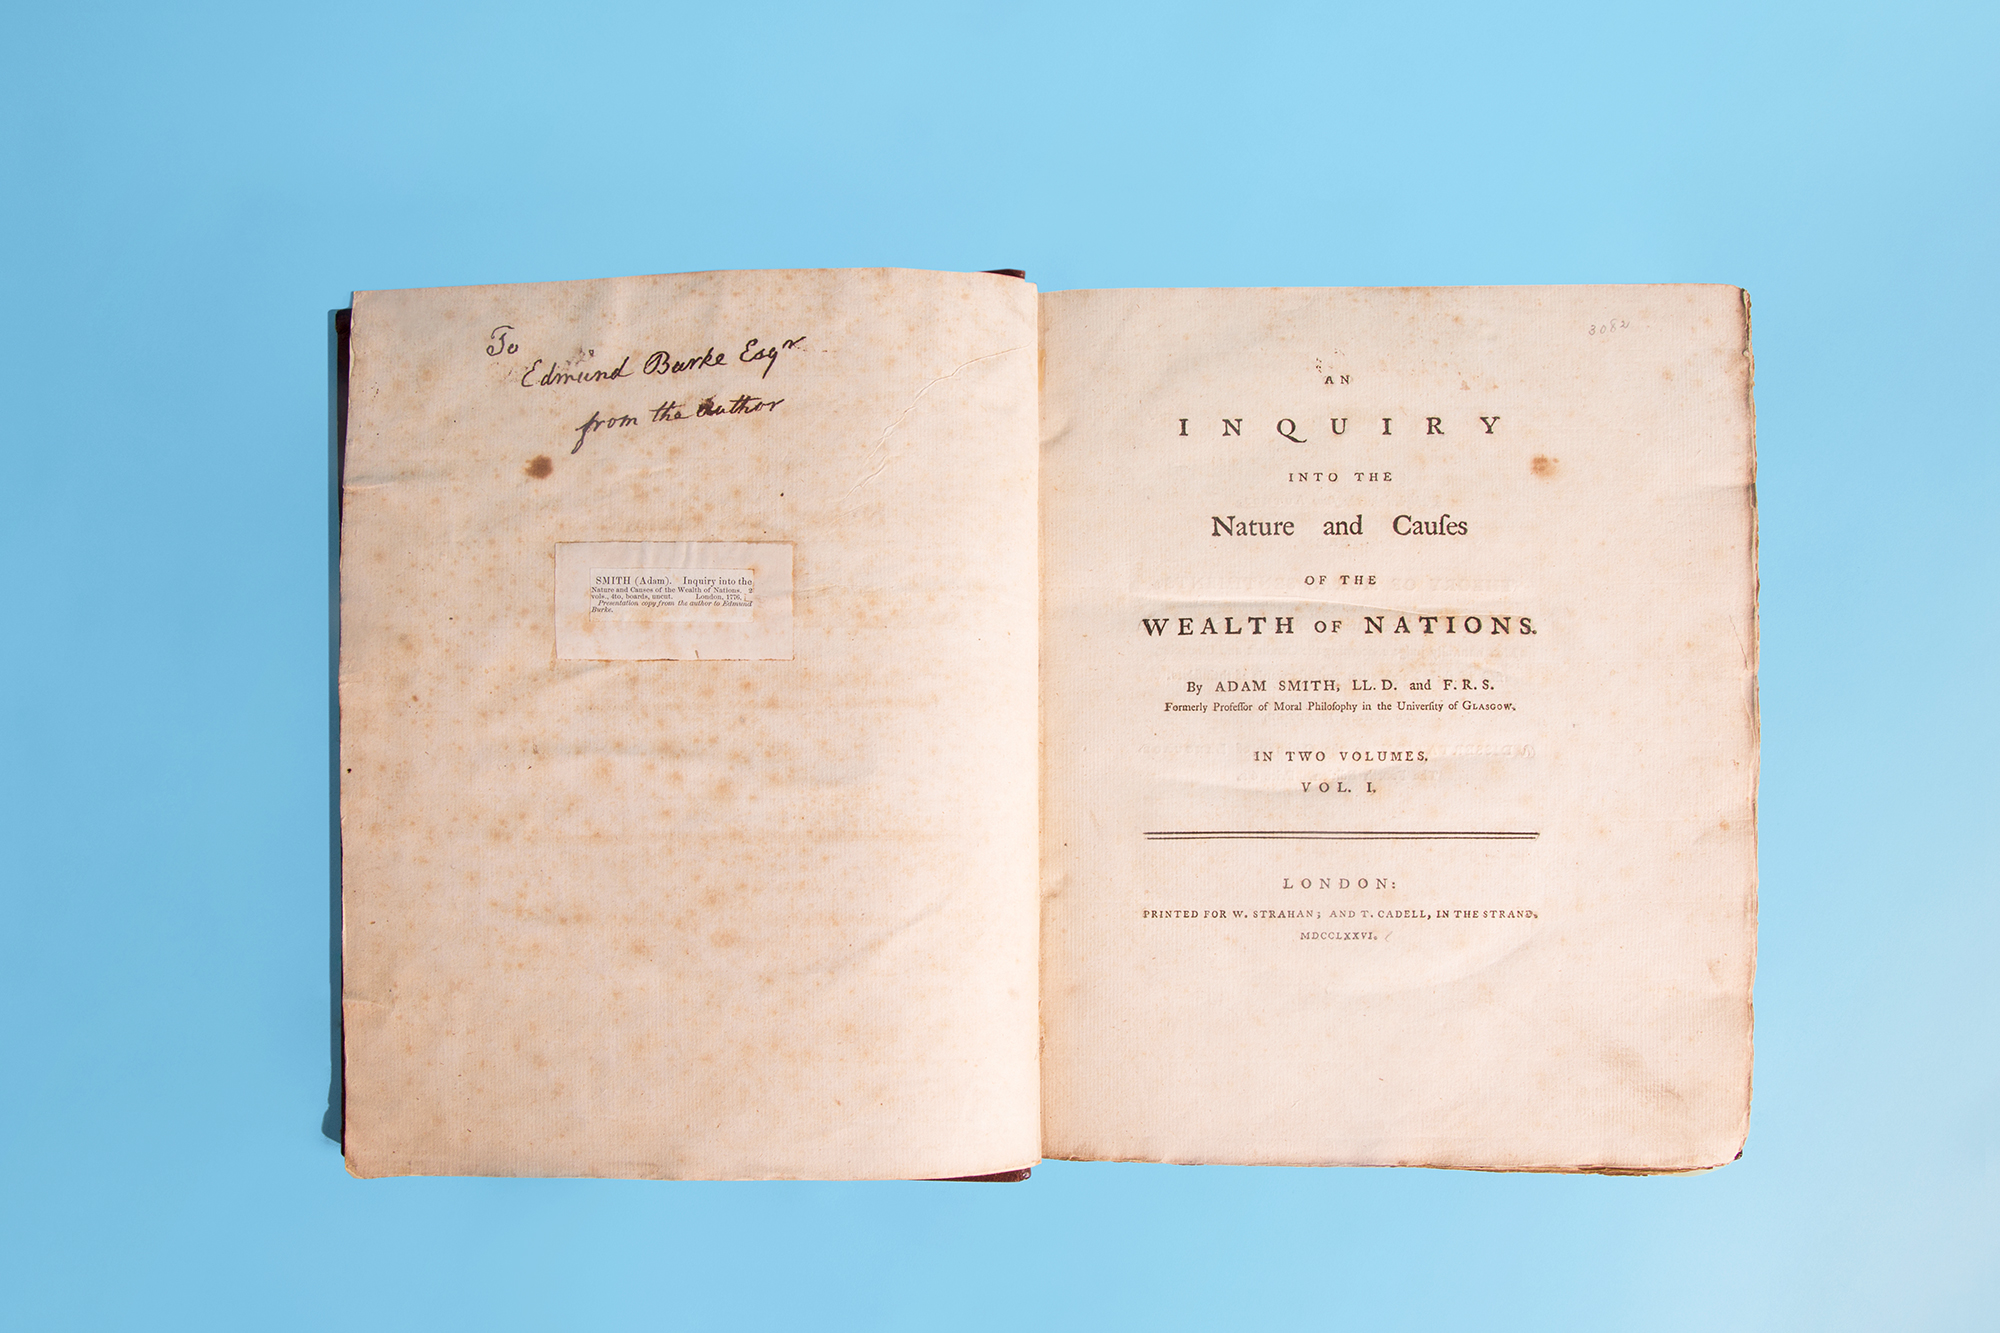 The Wealth of Nations: Henry Luce presented this first-edition copy of The Wealth of Nations, one of the founding texts of modern capitalism, as a gift to FORTUNE for its 25th anniversary. Author Adam Smith signed the title page to philosopher Edmund Burke in 1776.